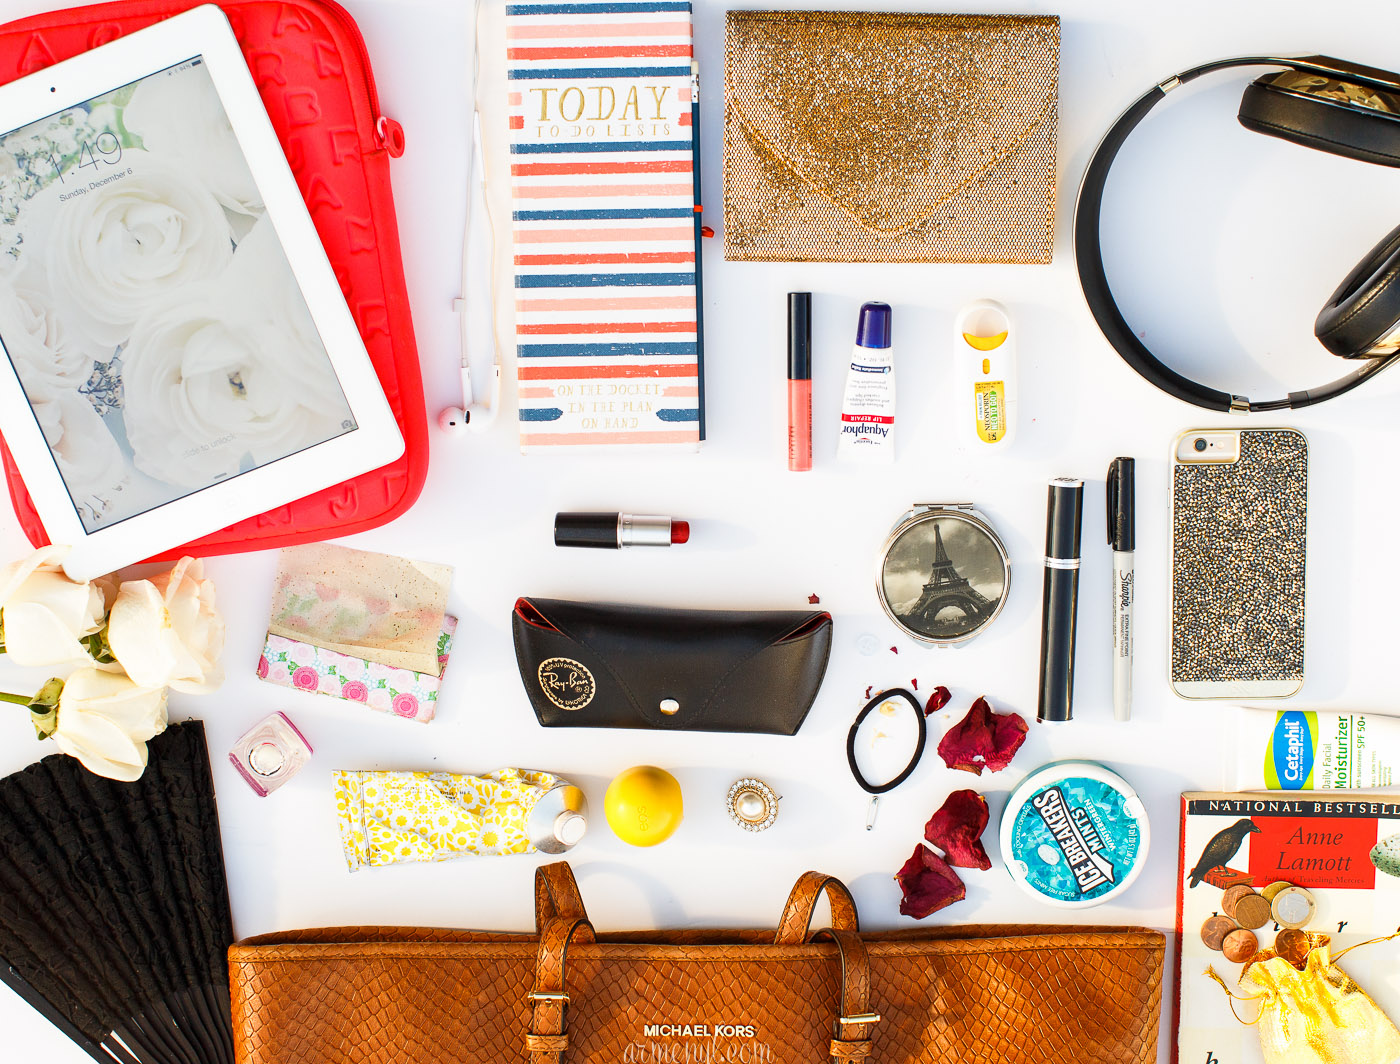 What's in my bag by Armenyl.com